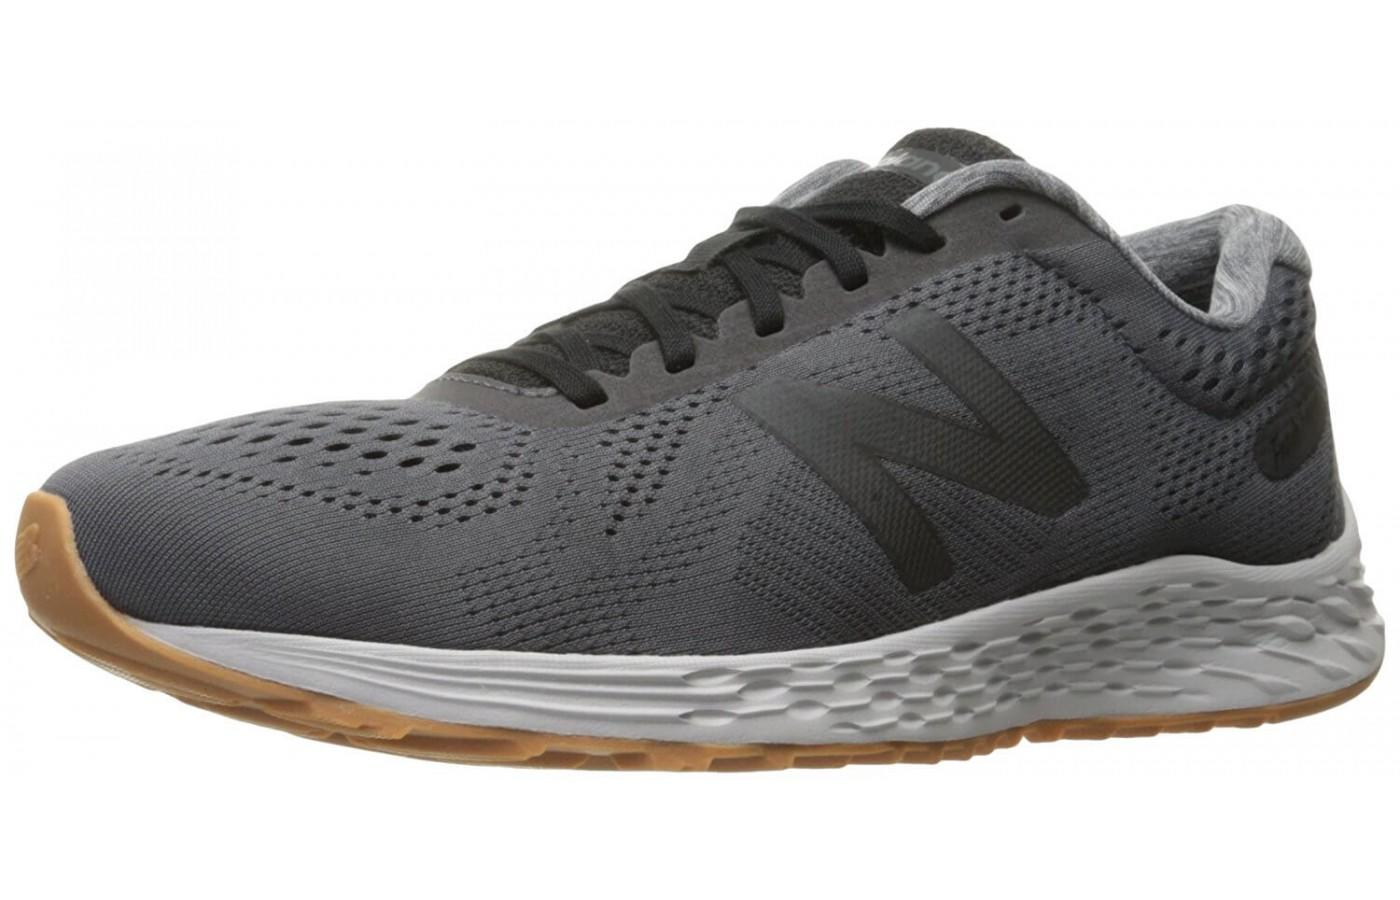 dfa3f836567 The New Balance Fresh Foam Arishi is a comfortable ride for everyday wear.